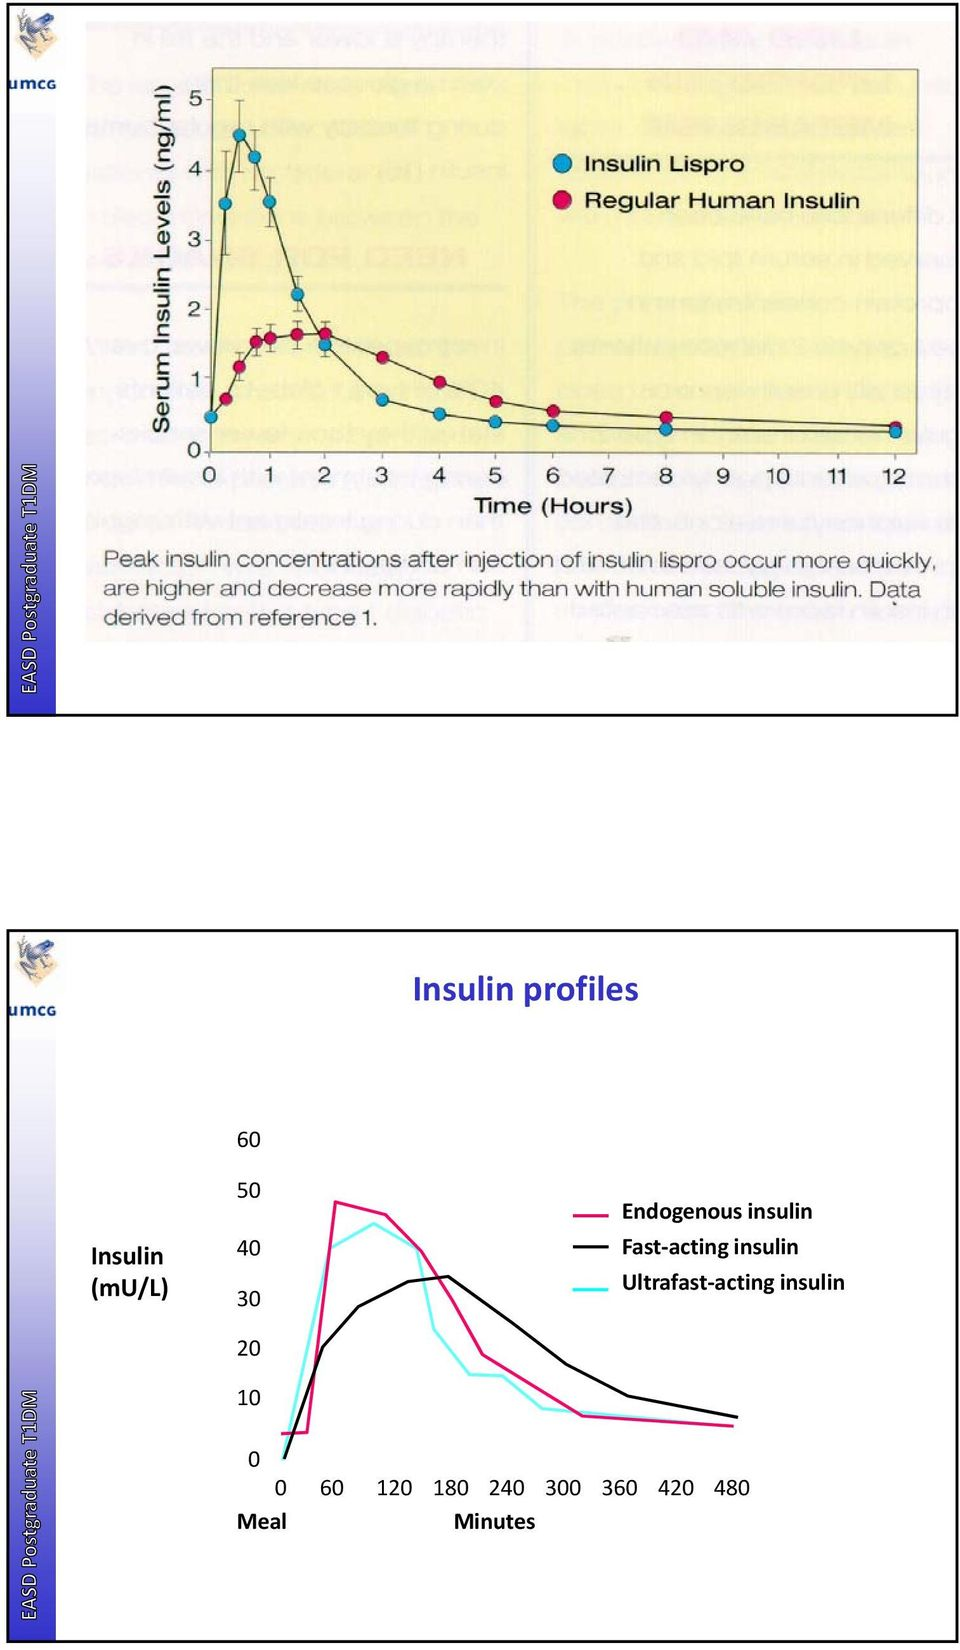 insulin Ultrafast acting insulin 0 0 60